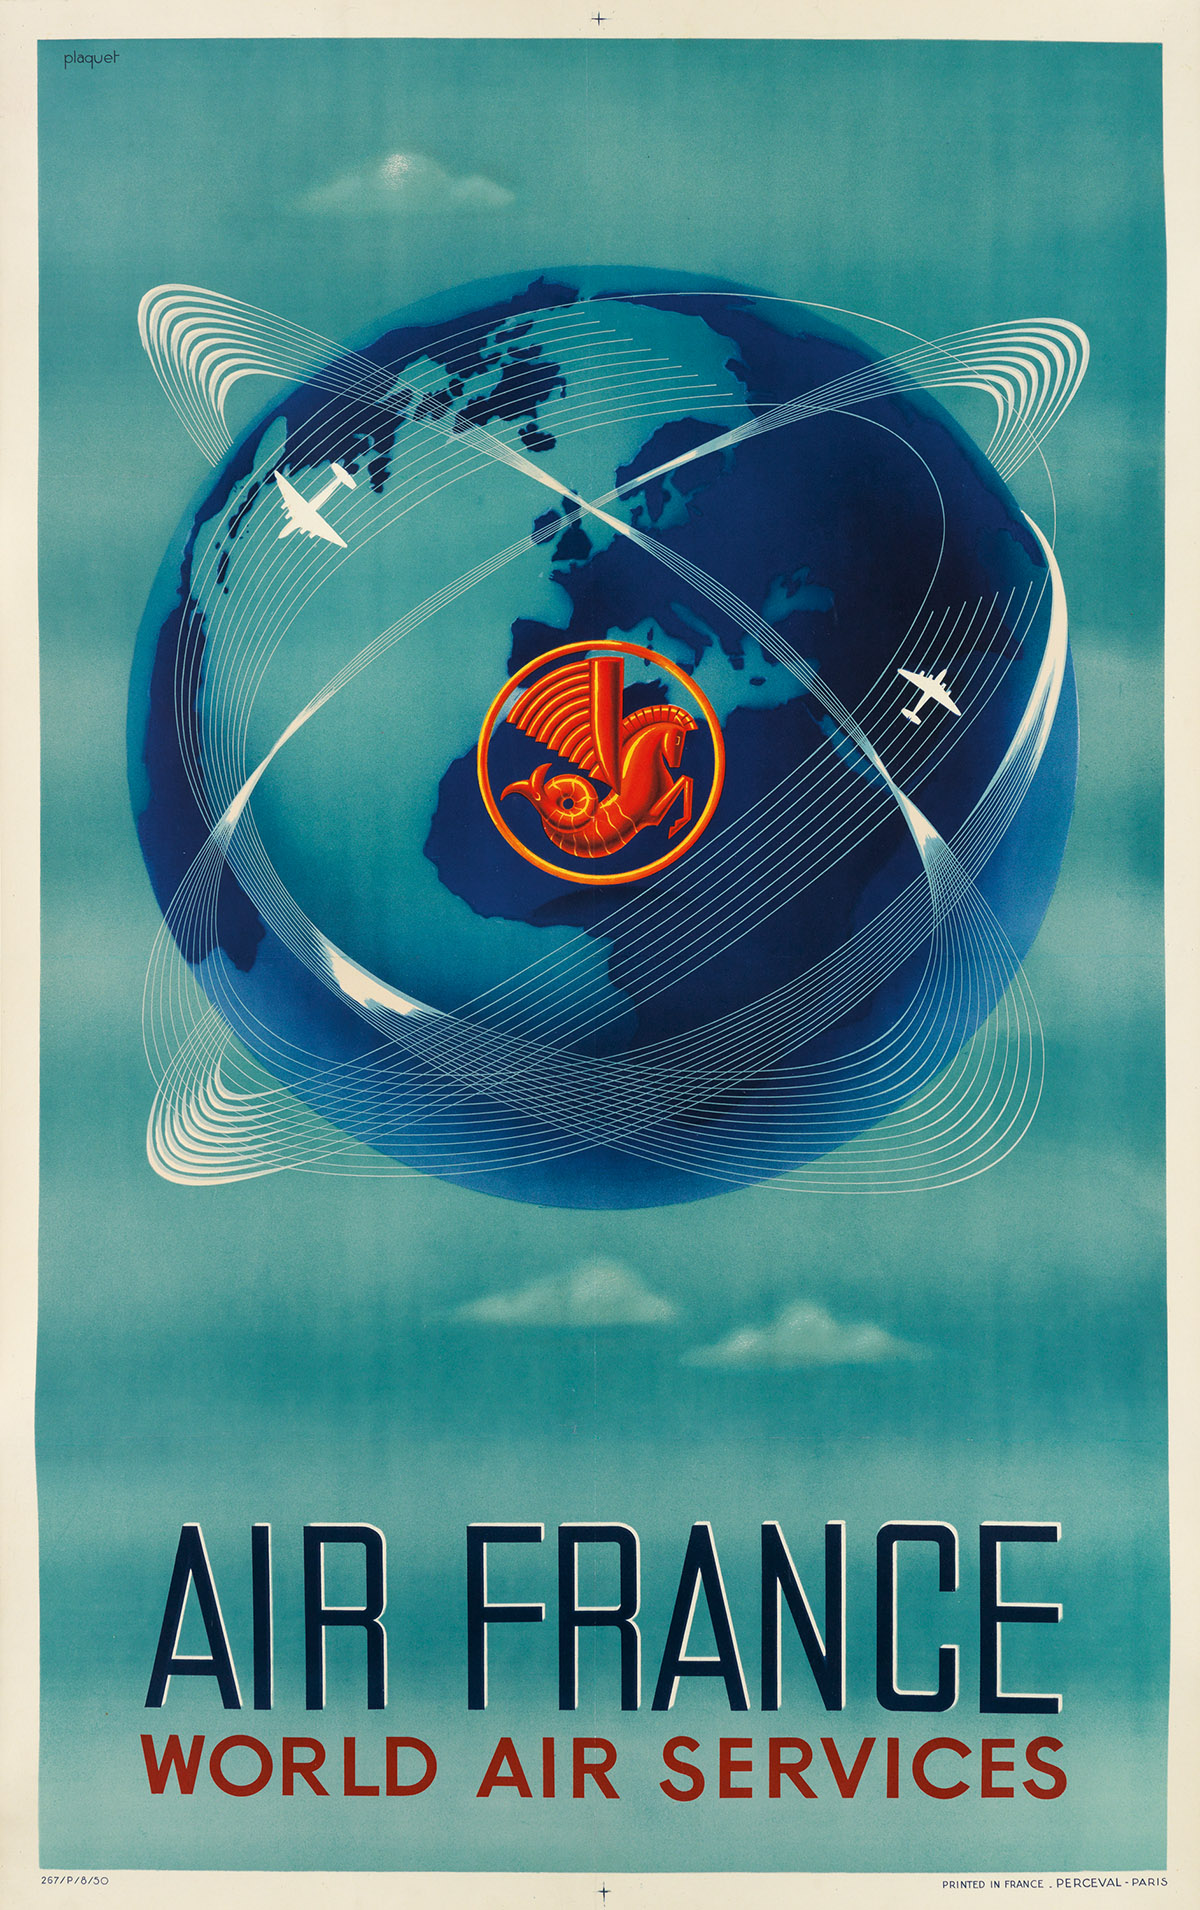 PLAQUET-(DATES-UNKNOWN)-AIR-FRANCE--WORLD-AIR-SERVICES-1950-